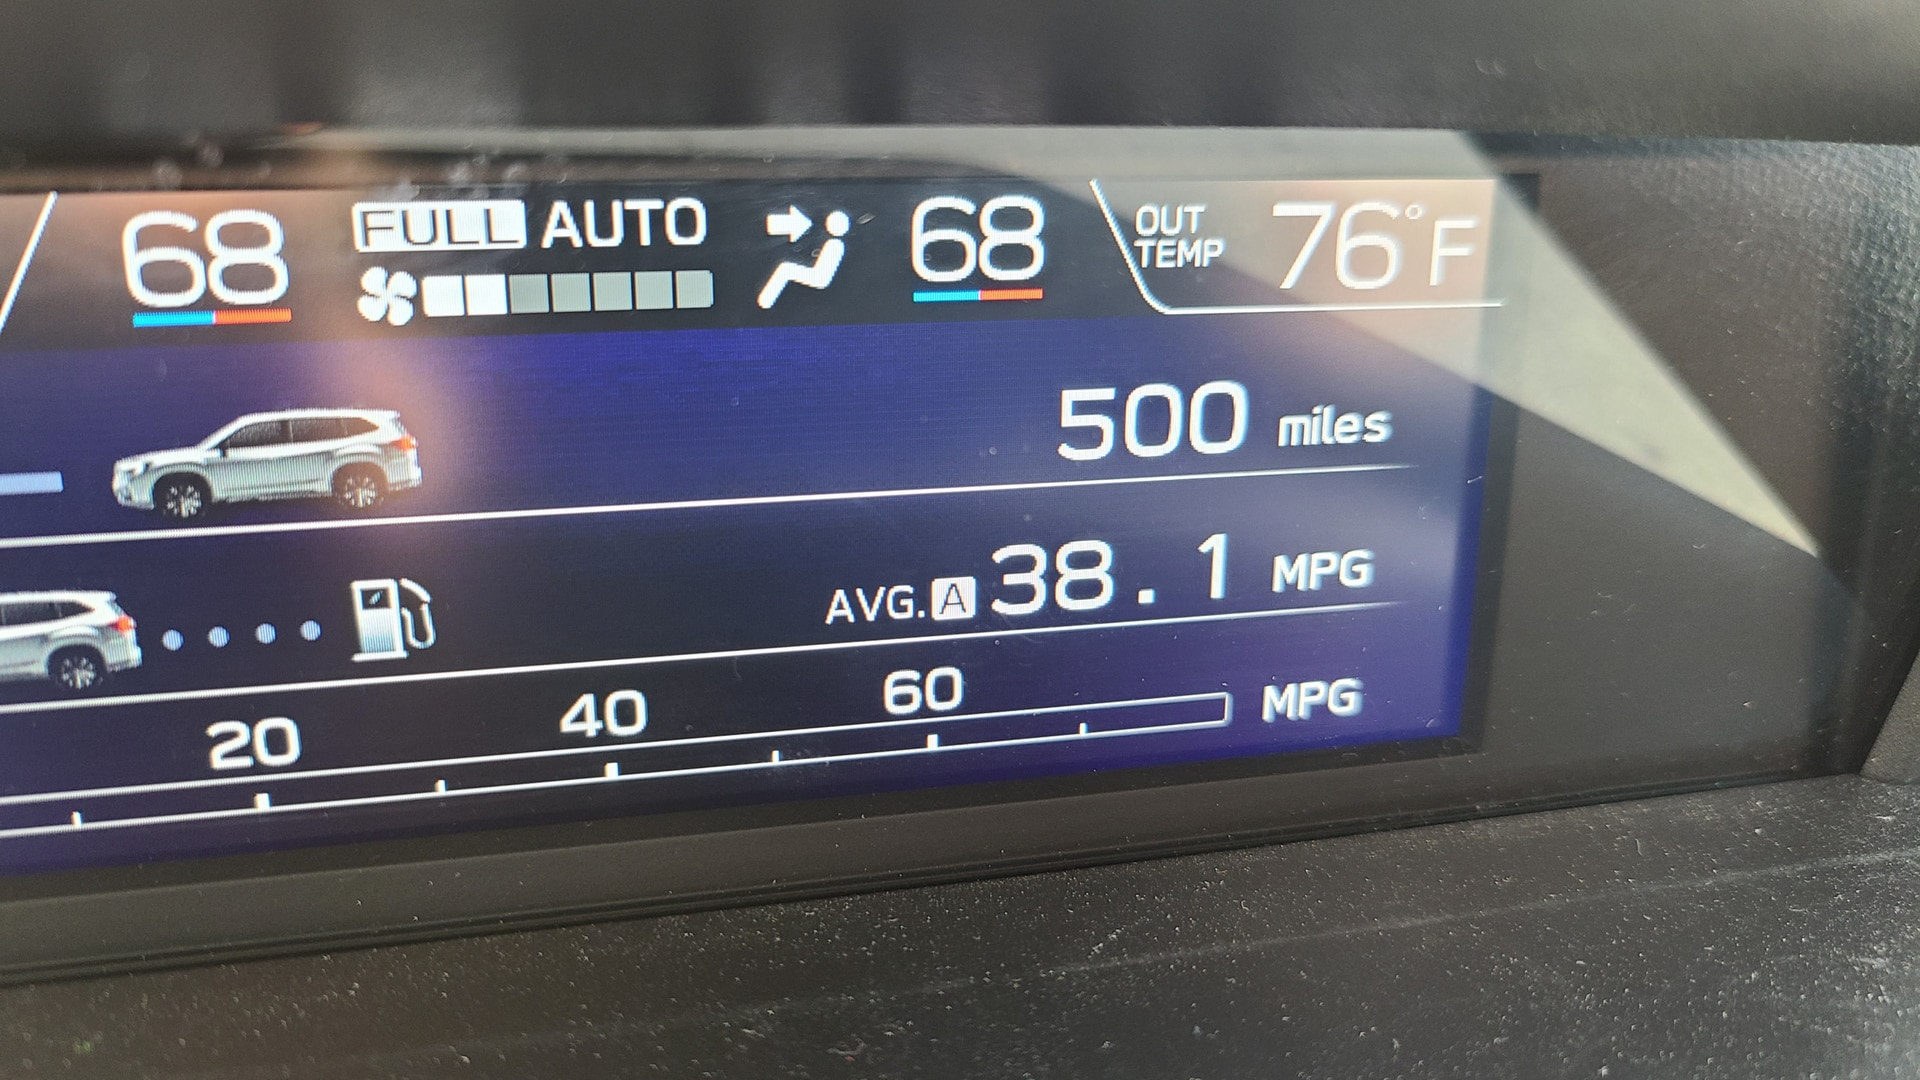 A display panel shows a car's fuel economy as 38.1 MPG.